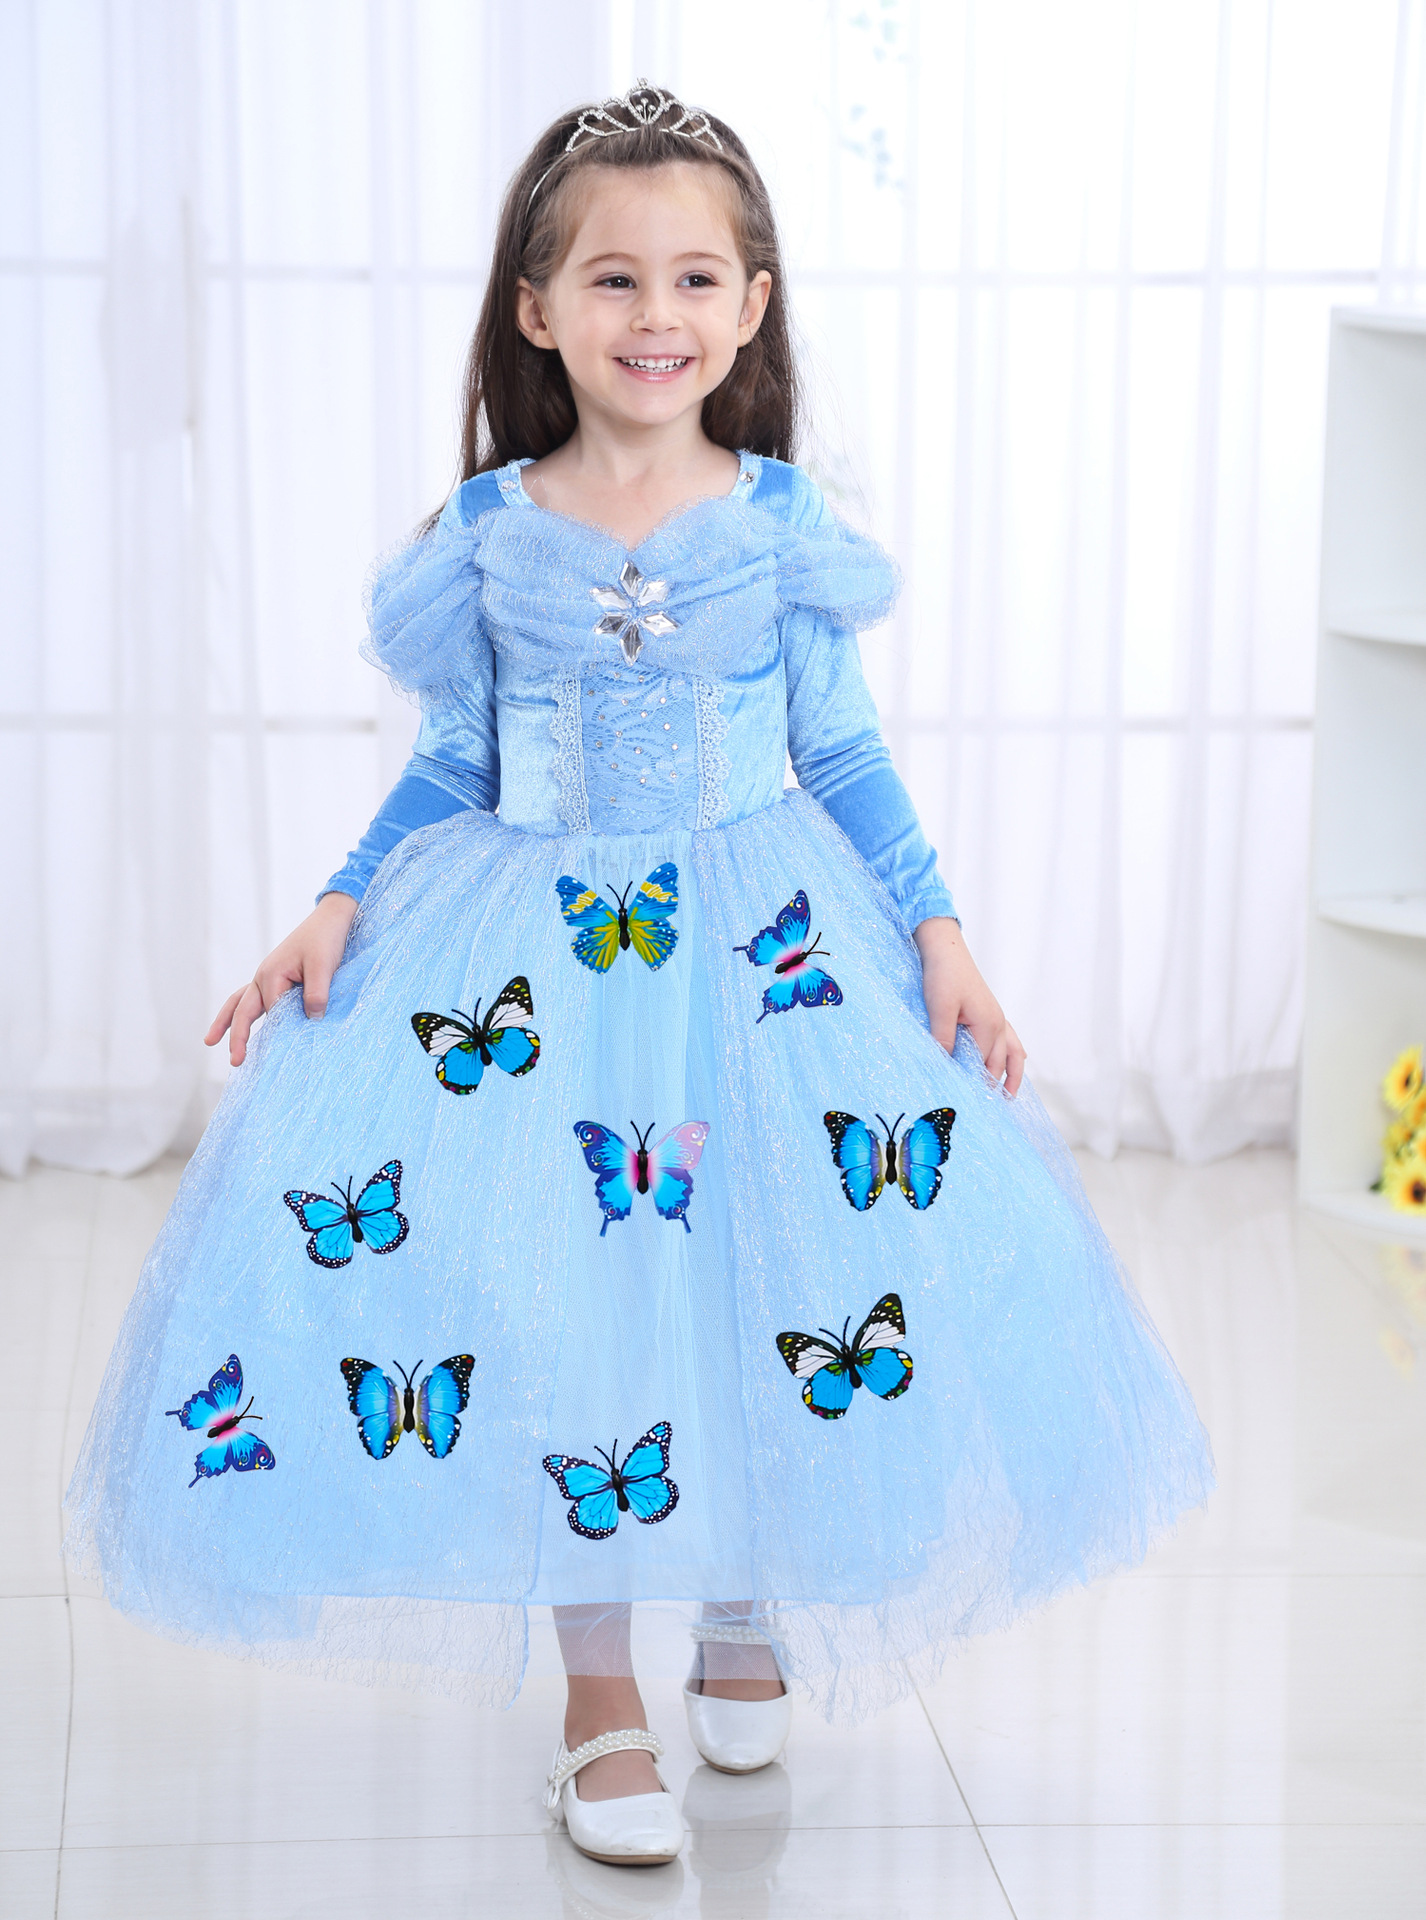 2019 New Kids Carnival Clothing Halloween Children's Cinderella Cosplay Costume  Girl Anna Elsa Princess Dress Age 3-12 Year